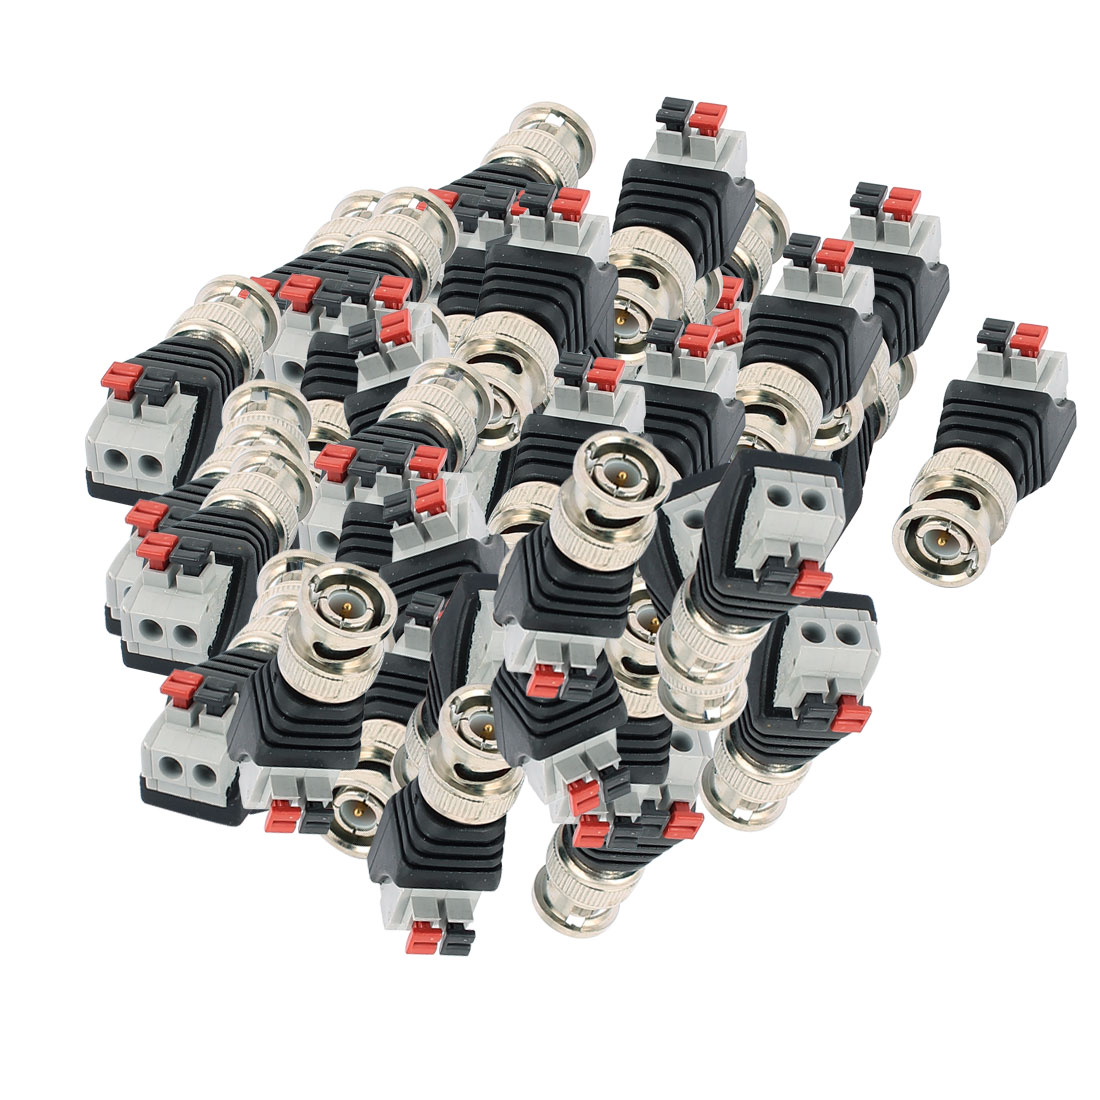 50 Pcs Clip Type Terminal Block Coaxial Cat5 to BNC Male Jack Video Balun Connector